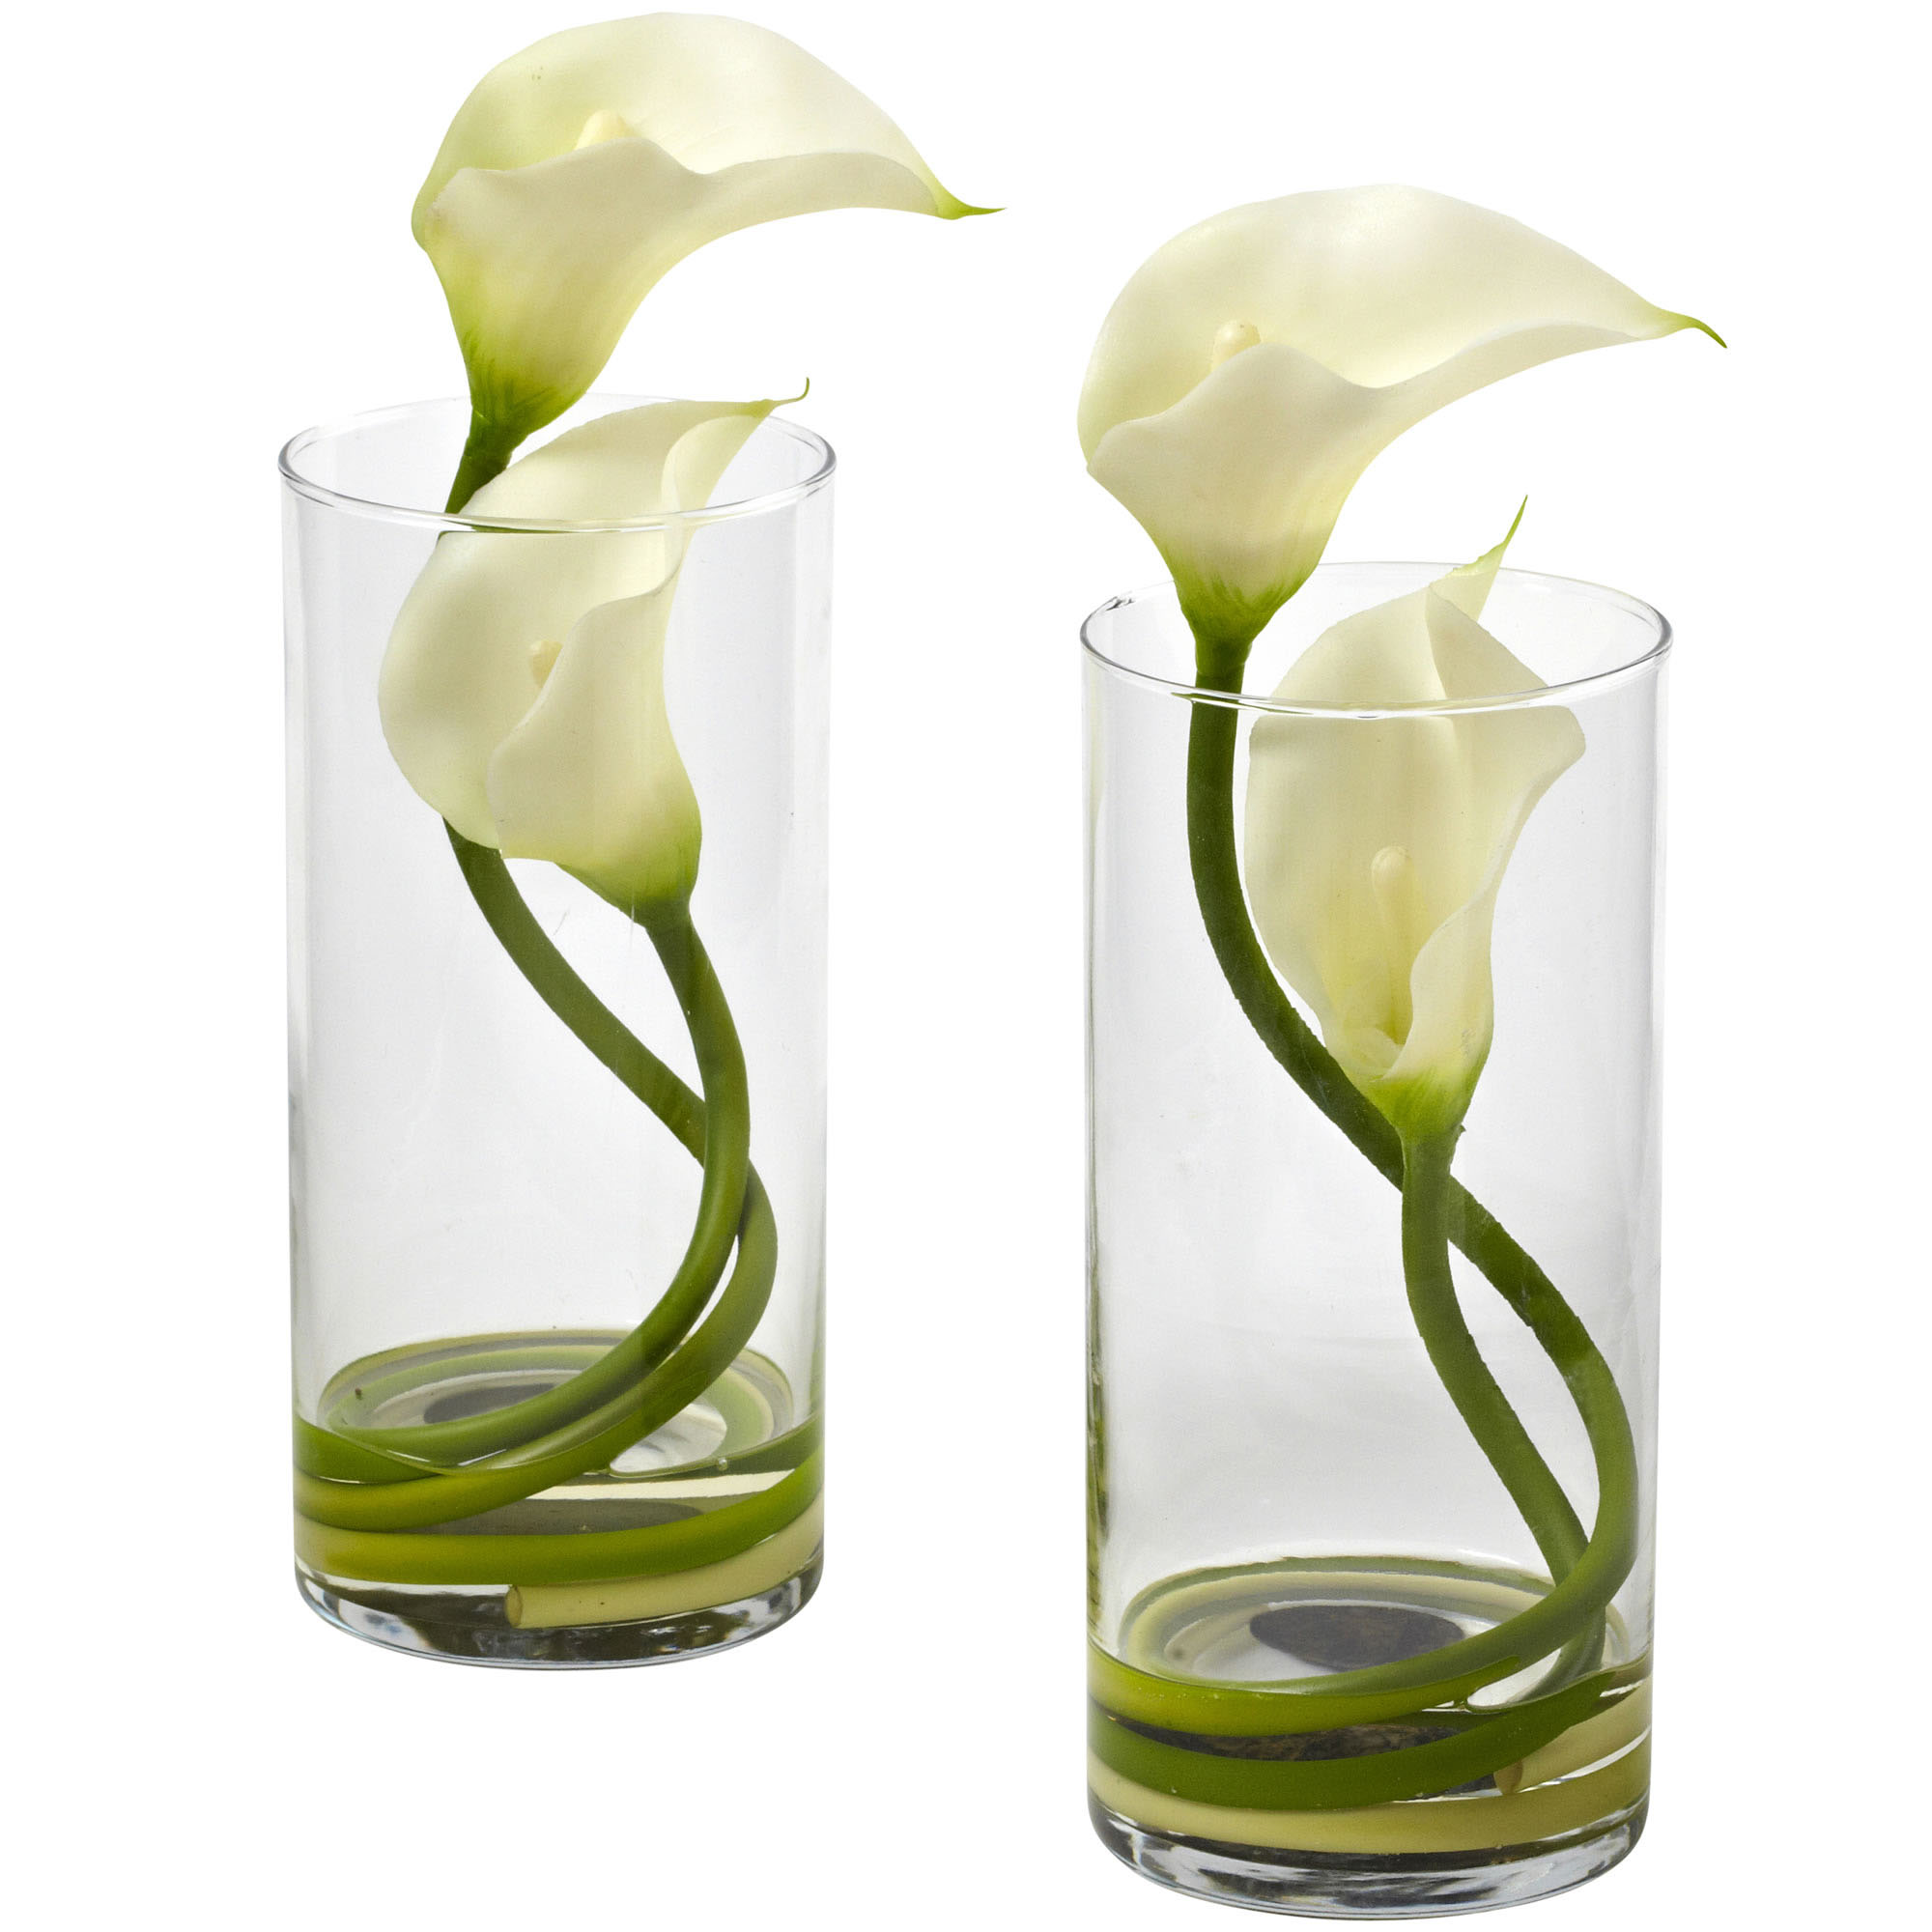 105 inch silk double calla lily in vase set of 2 1390 closeup image reviewsmspy